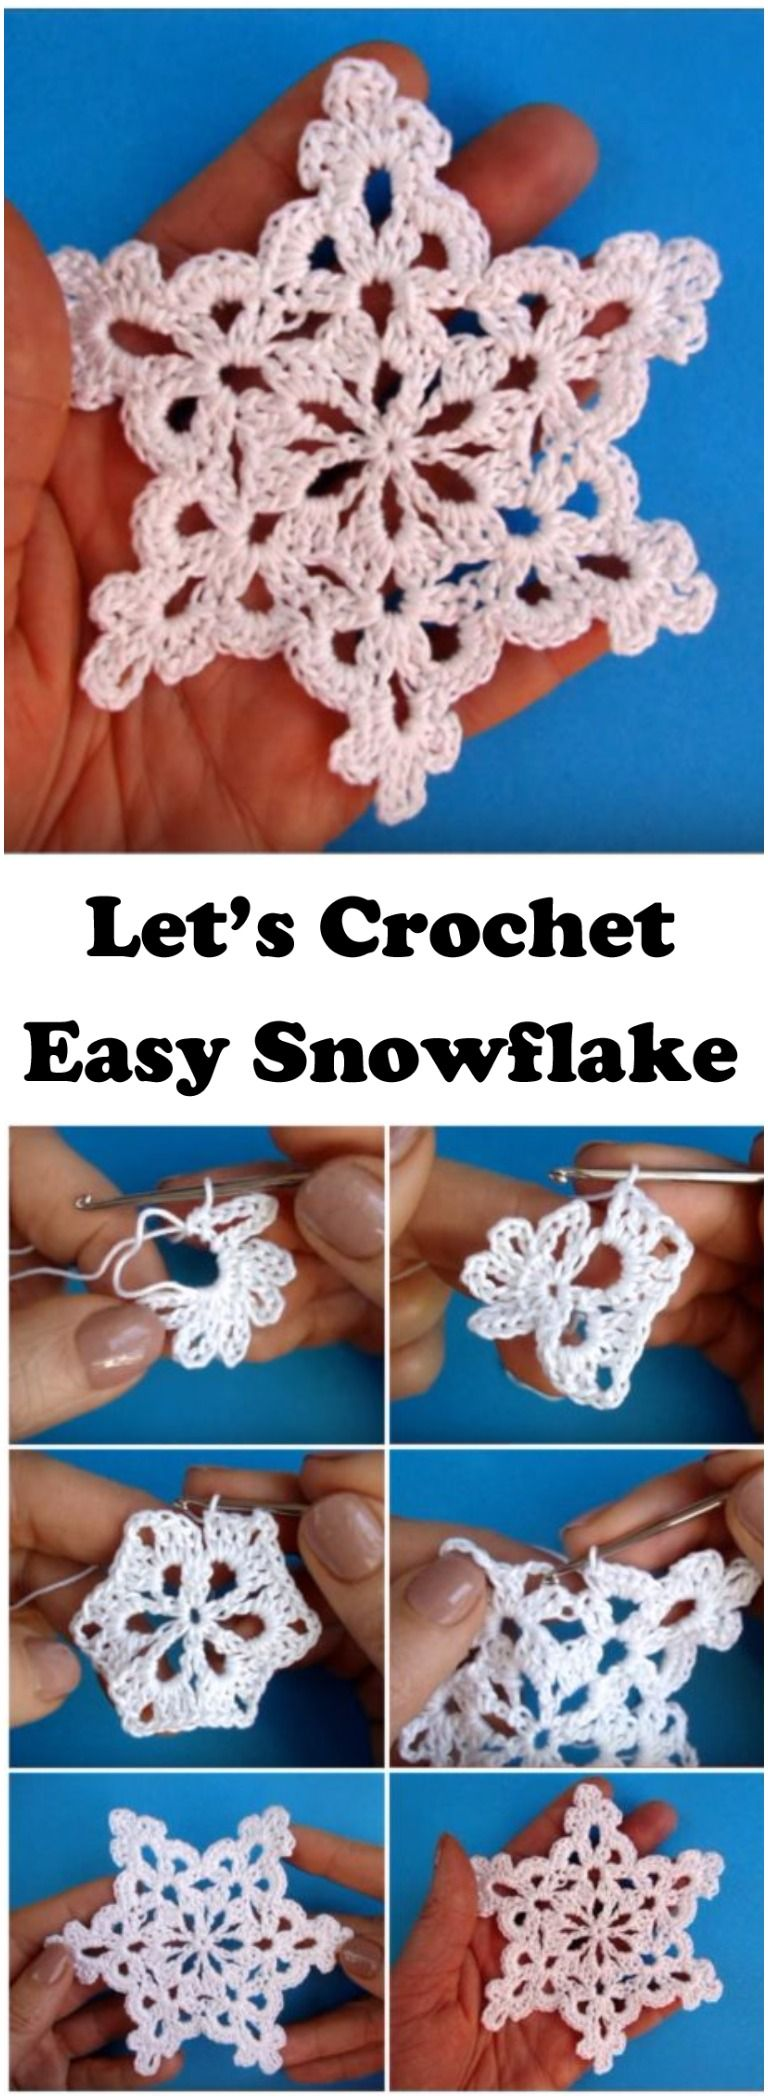 Learn To Crochet Snowflake Juleting Pinterest Coaster Patterns Diagrams A Few Pretty Snowflakes